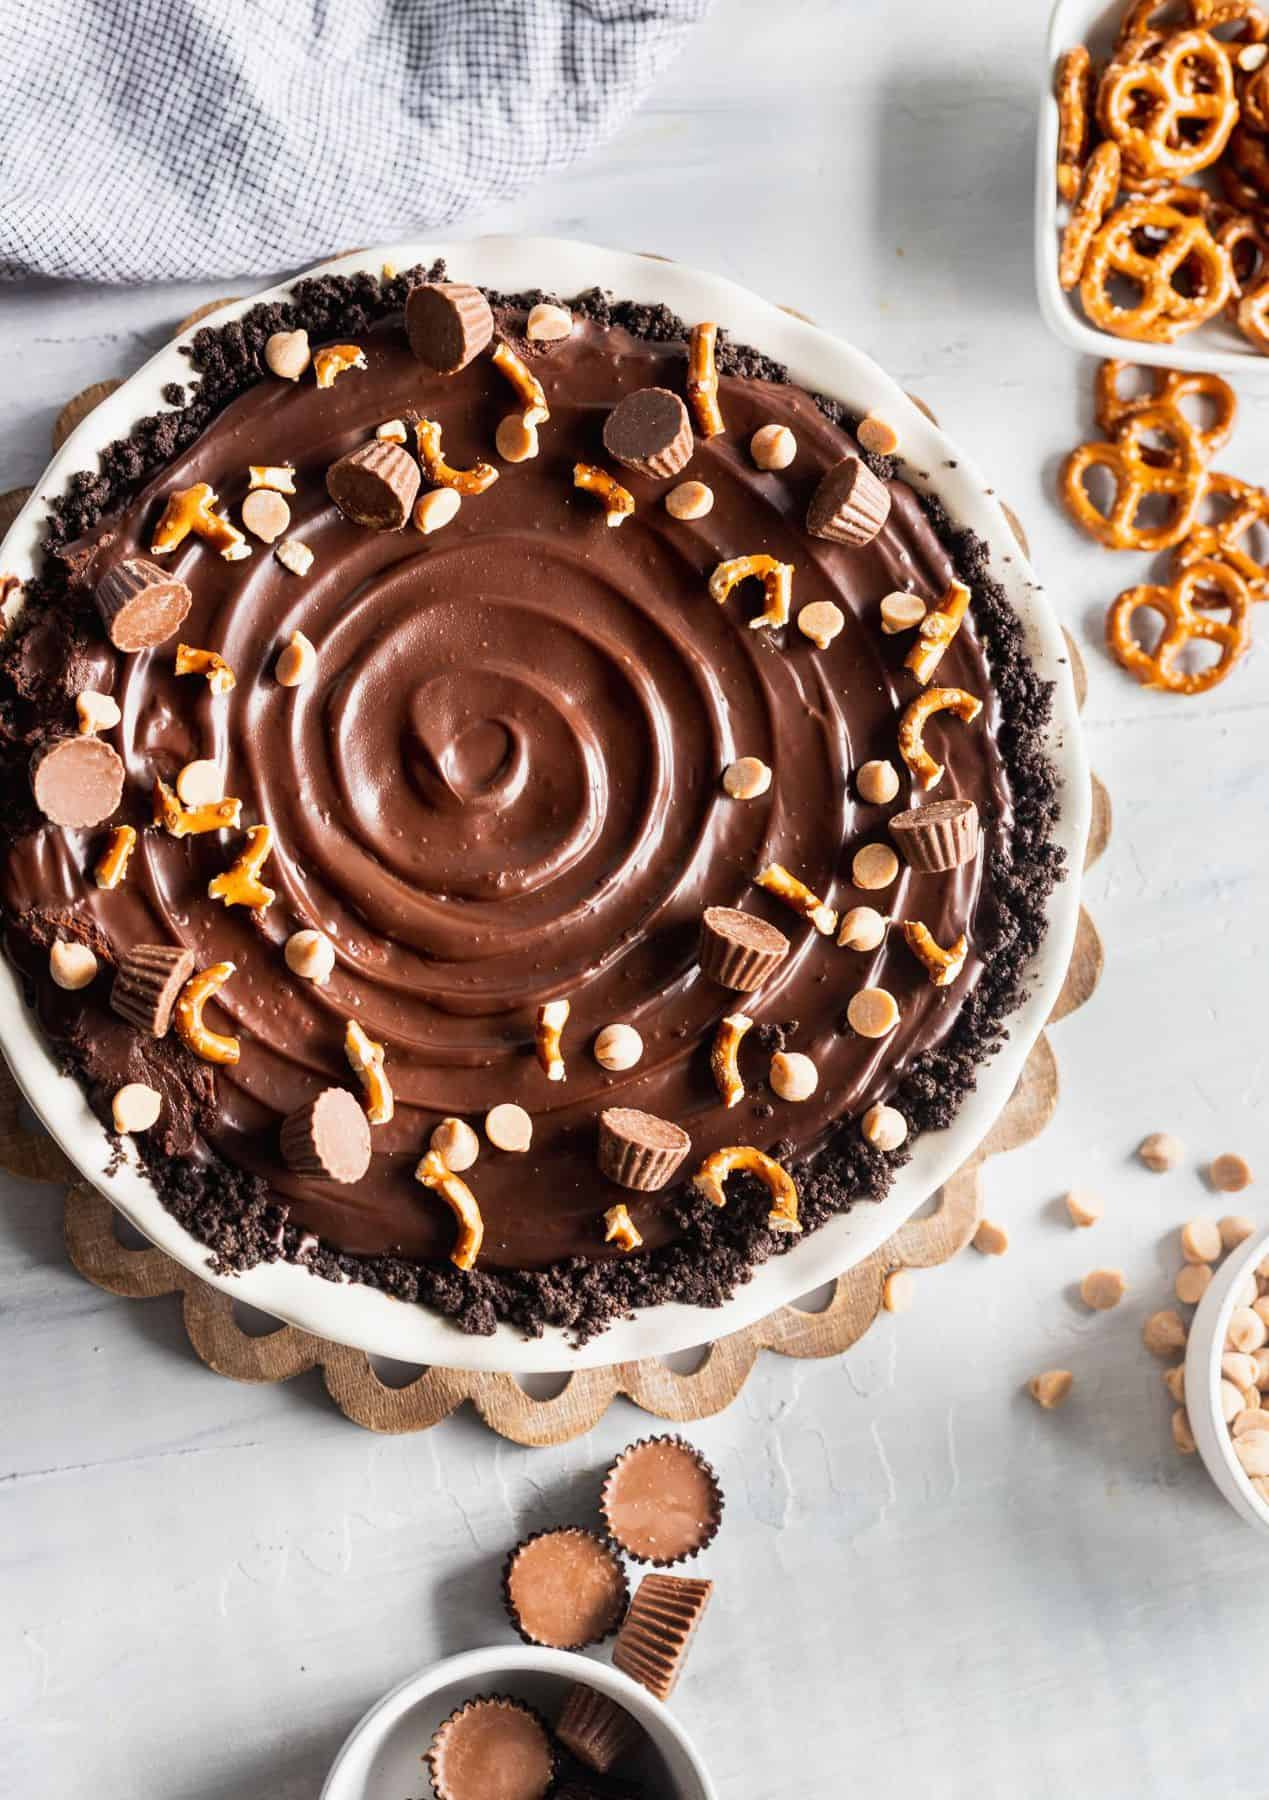 Chocolate peanut butter cup pie in a pie dish with pretzels, and peanut butter cups scattered around